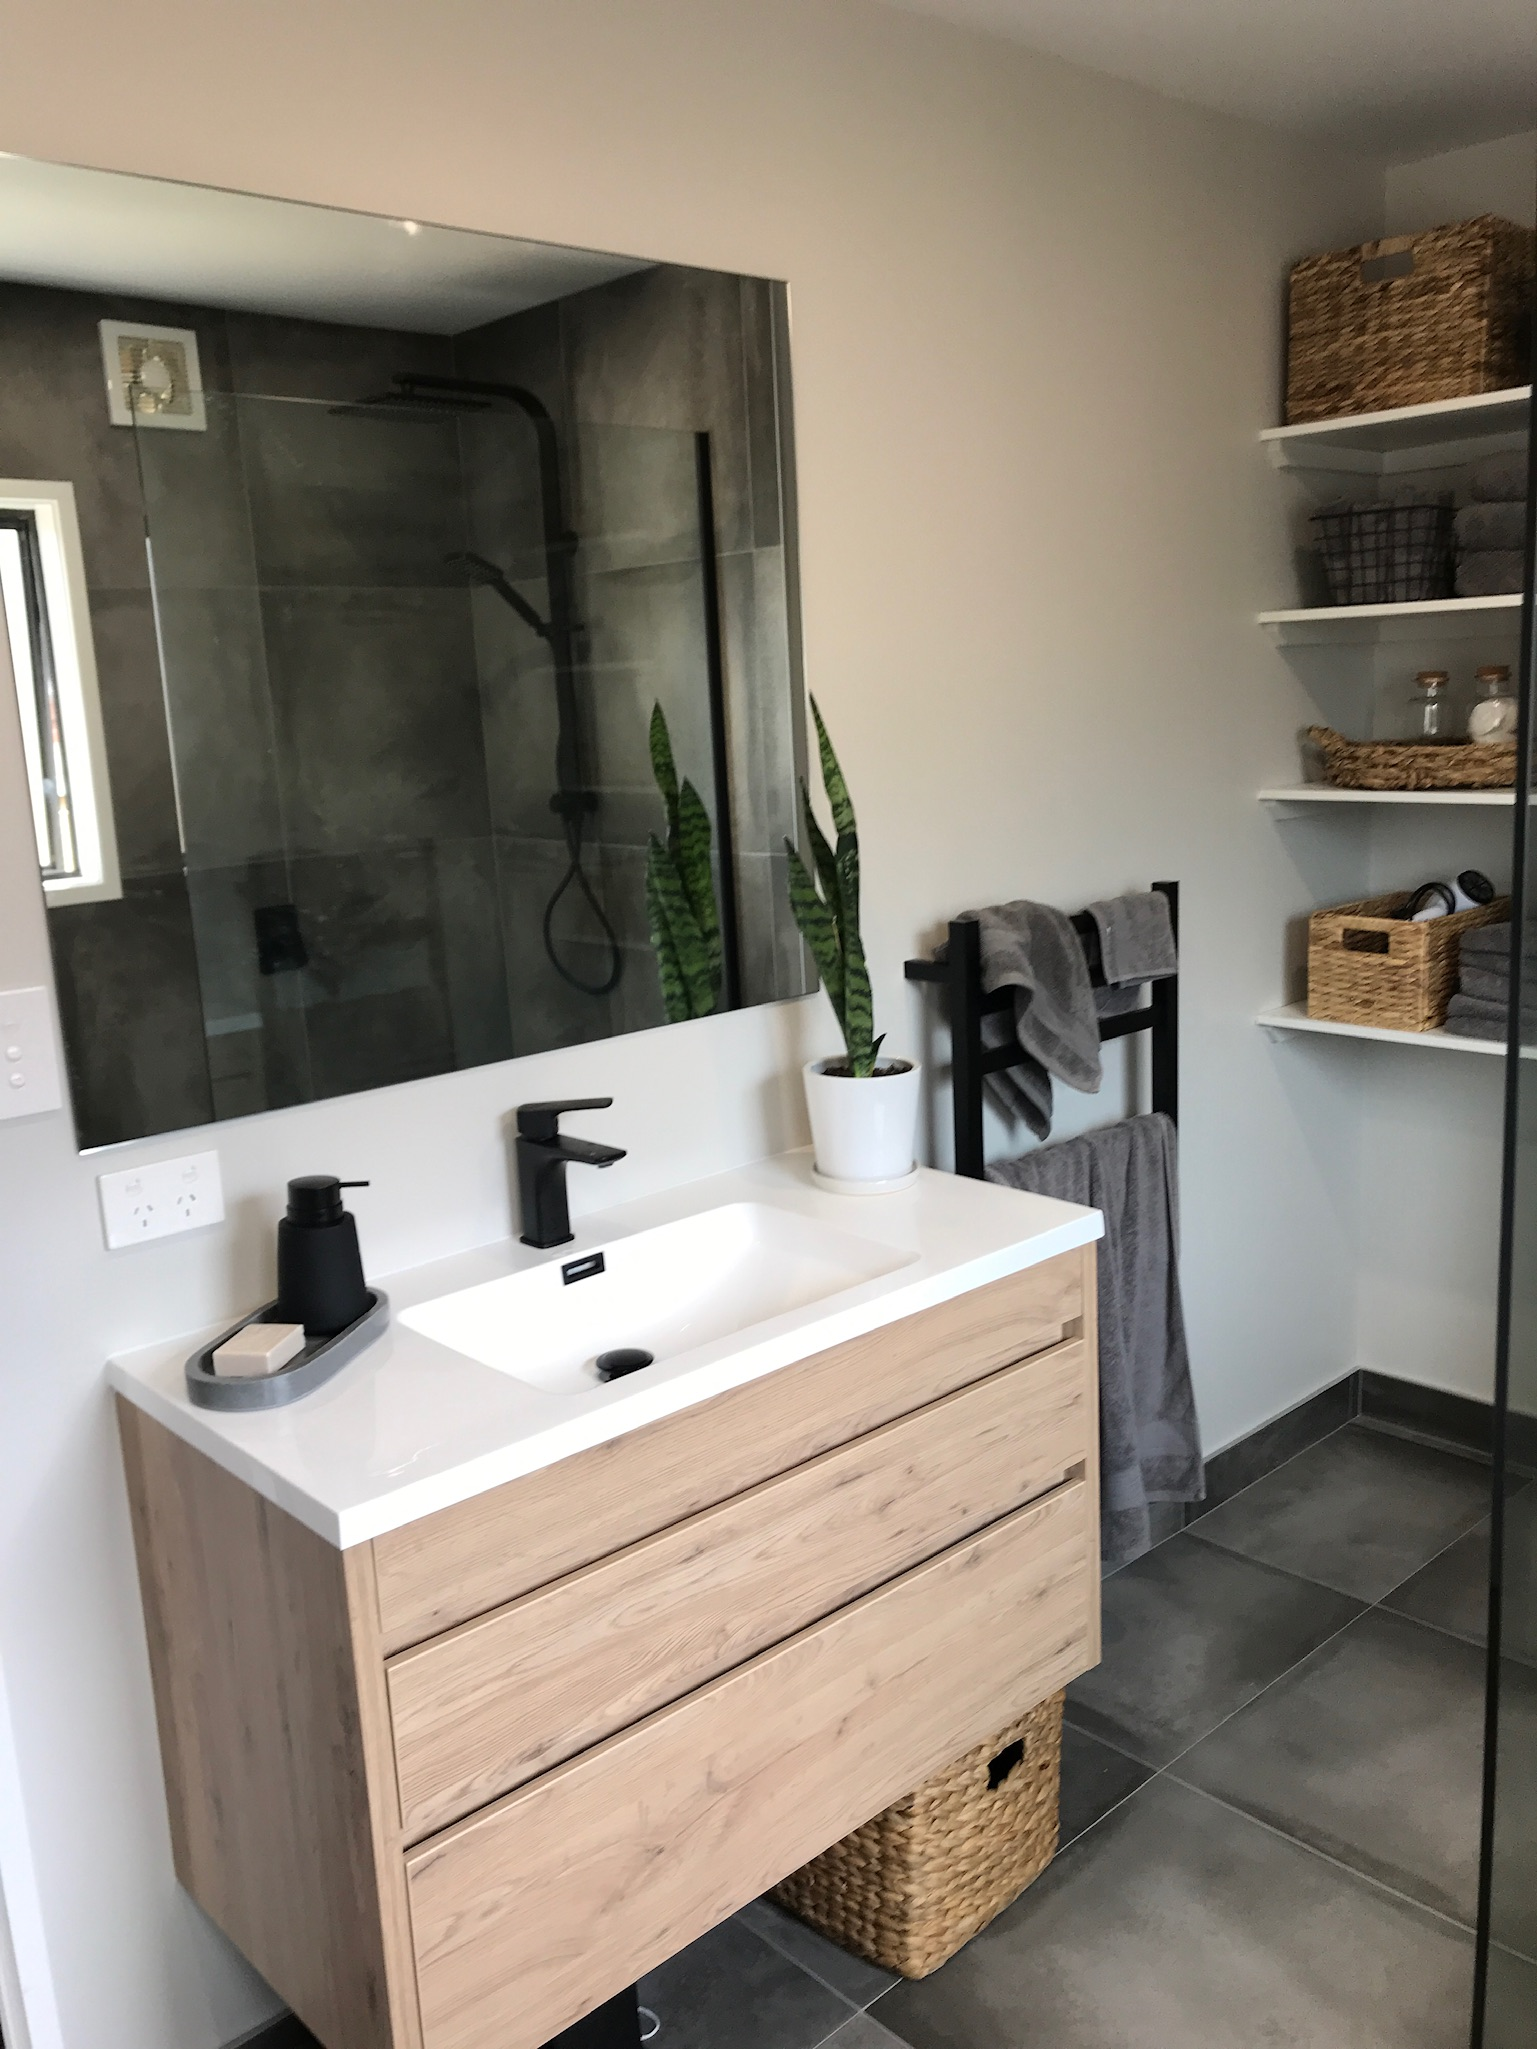 Slick and Modern in Milford Bathroom, Featured renovation photo